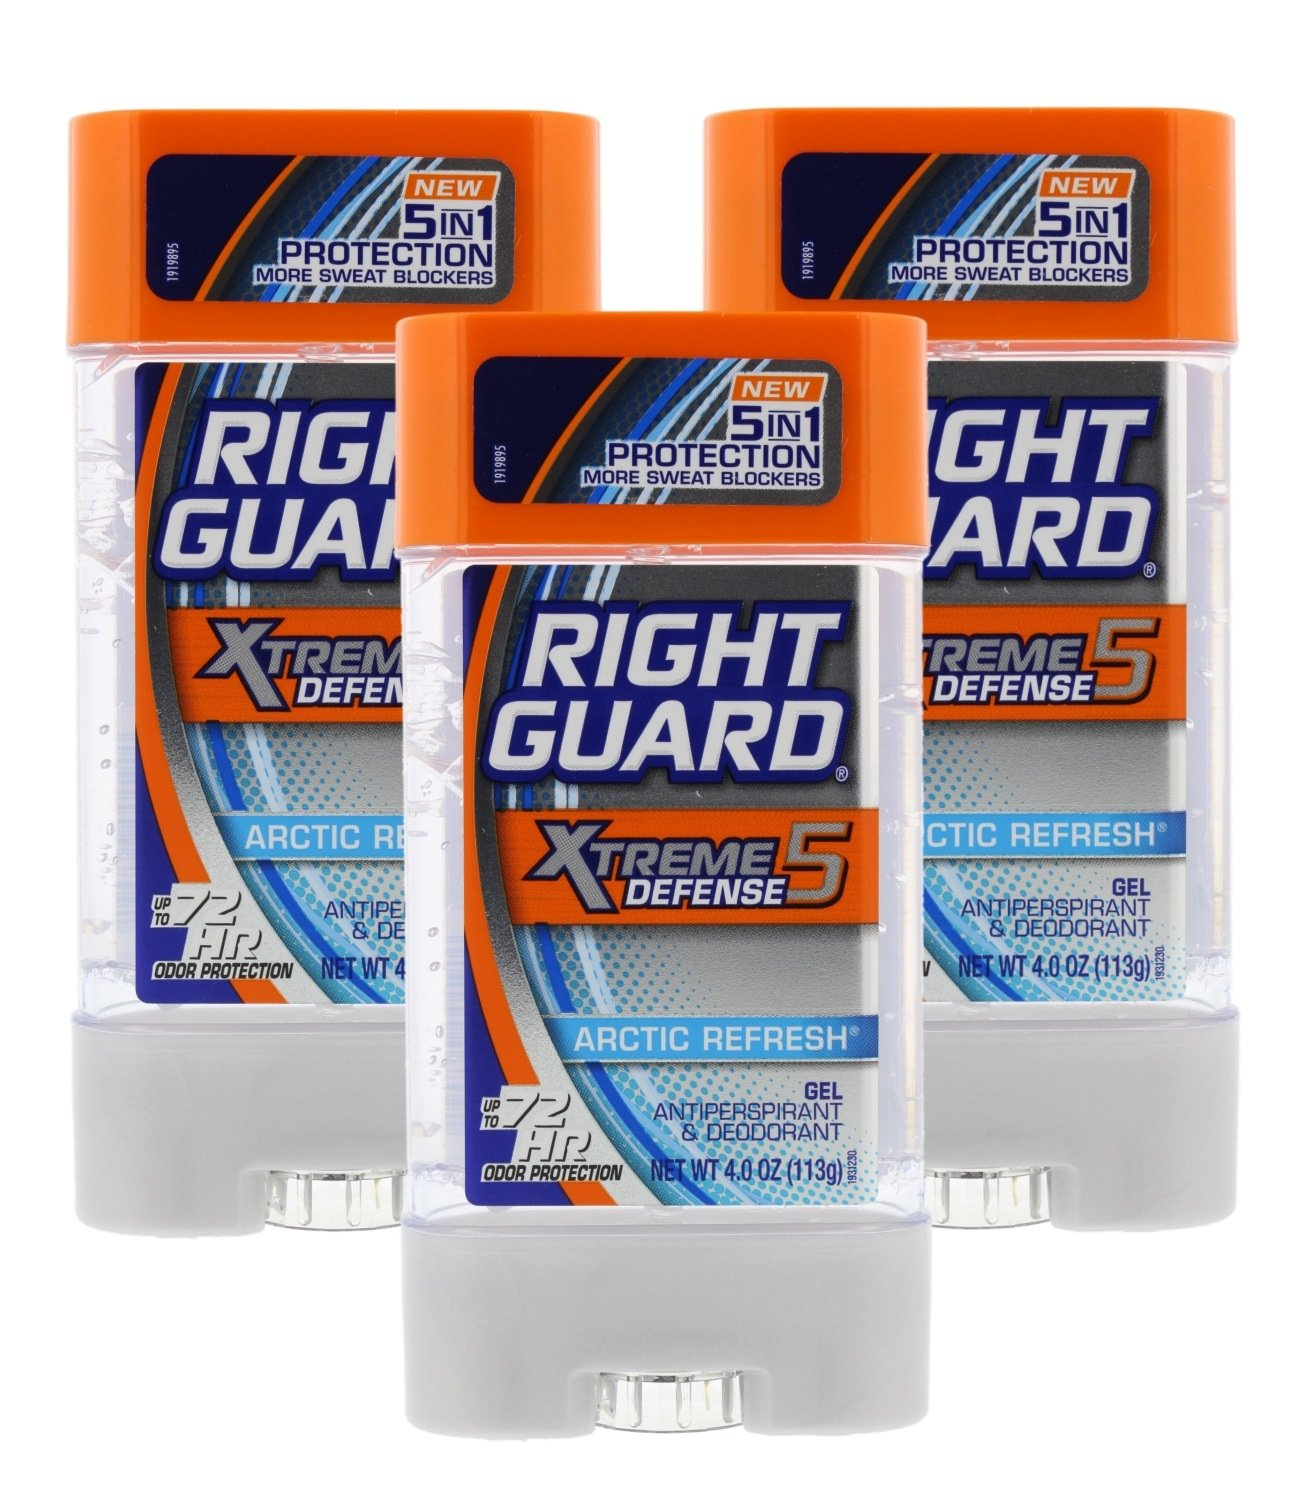 Right Guard Total Defense 5 Power Gel, Antiperspirant and Deodorant, Artic Refresh 4 Ounce (Pack of 3) by Right Guard (Image #1)